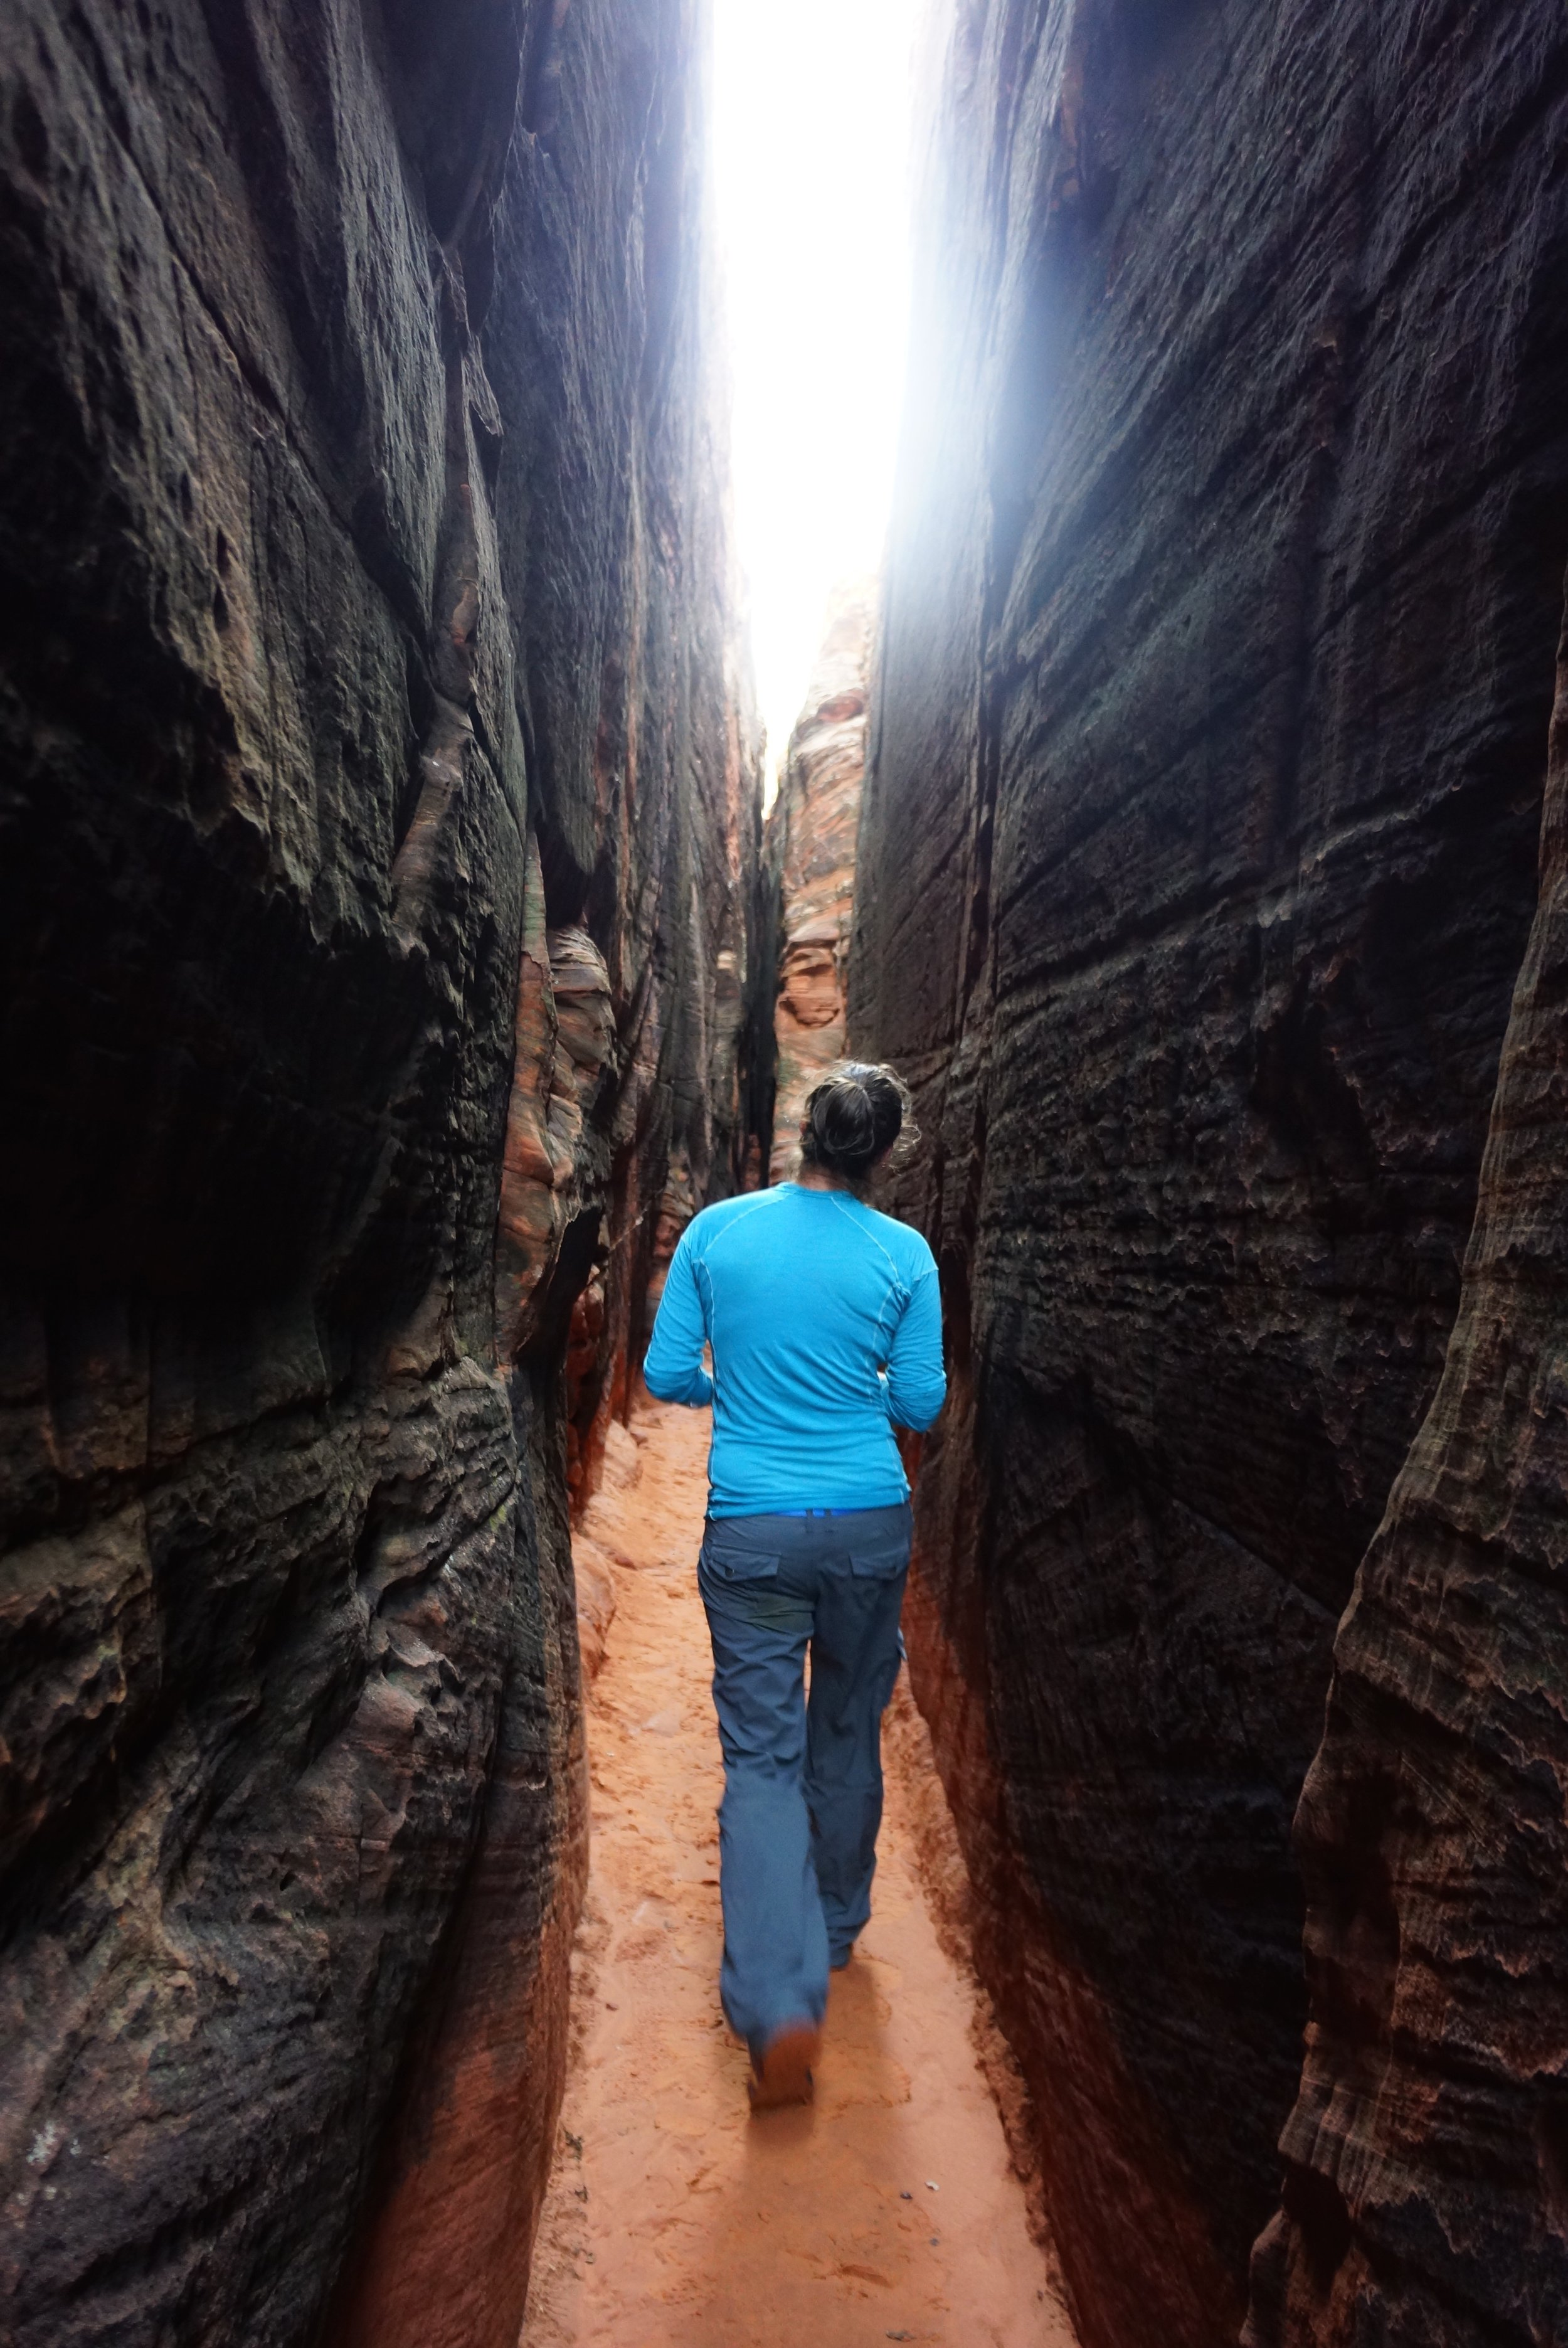 One of the slot canyons with petroglyphs